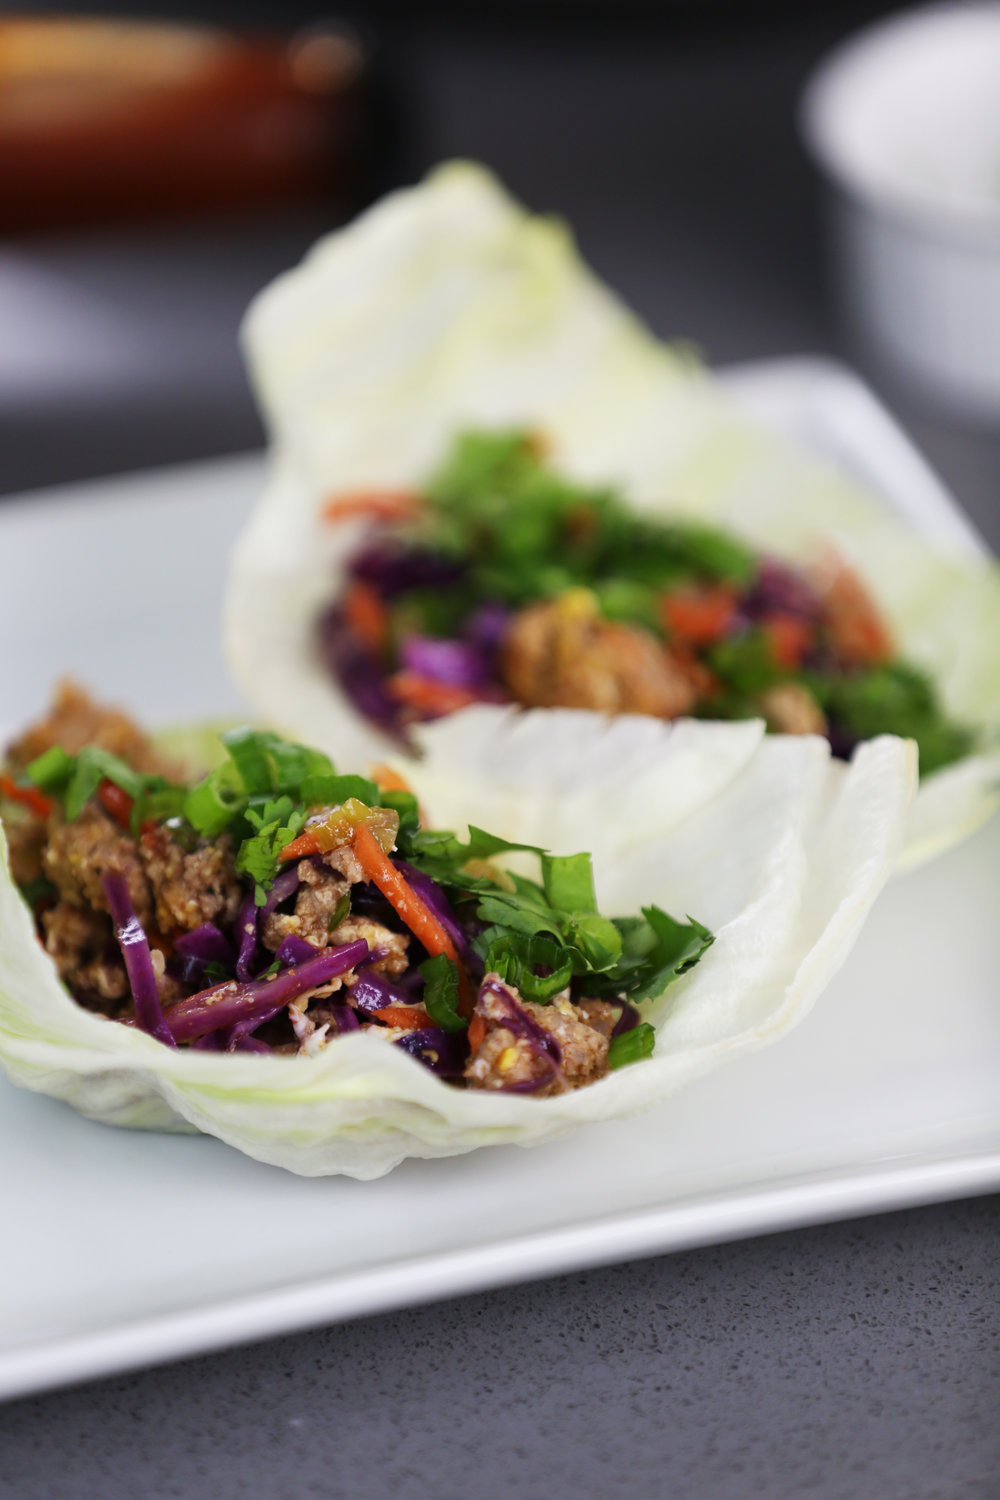 lettuce wraps photo v1.jpg